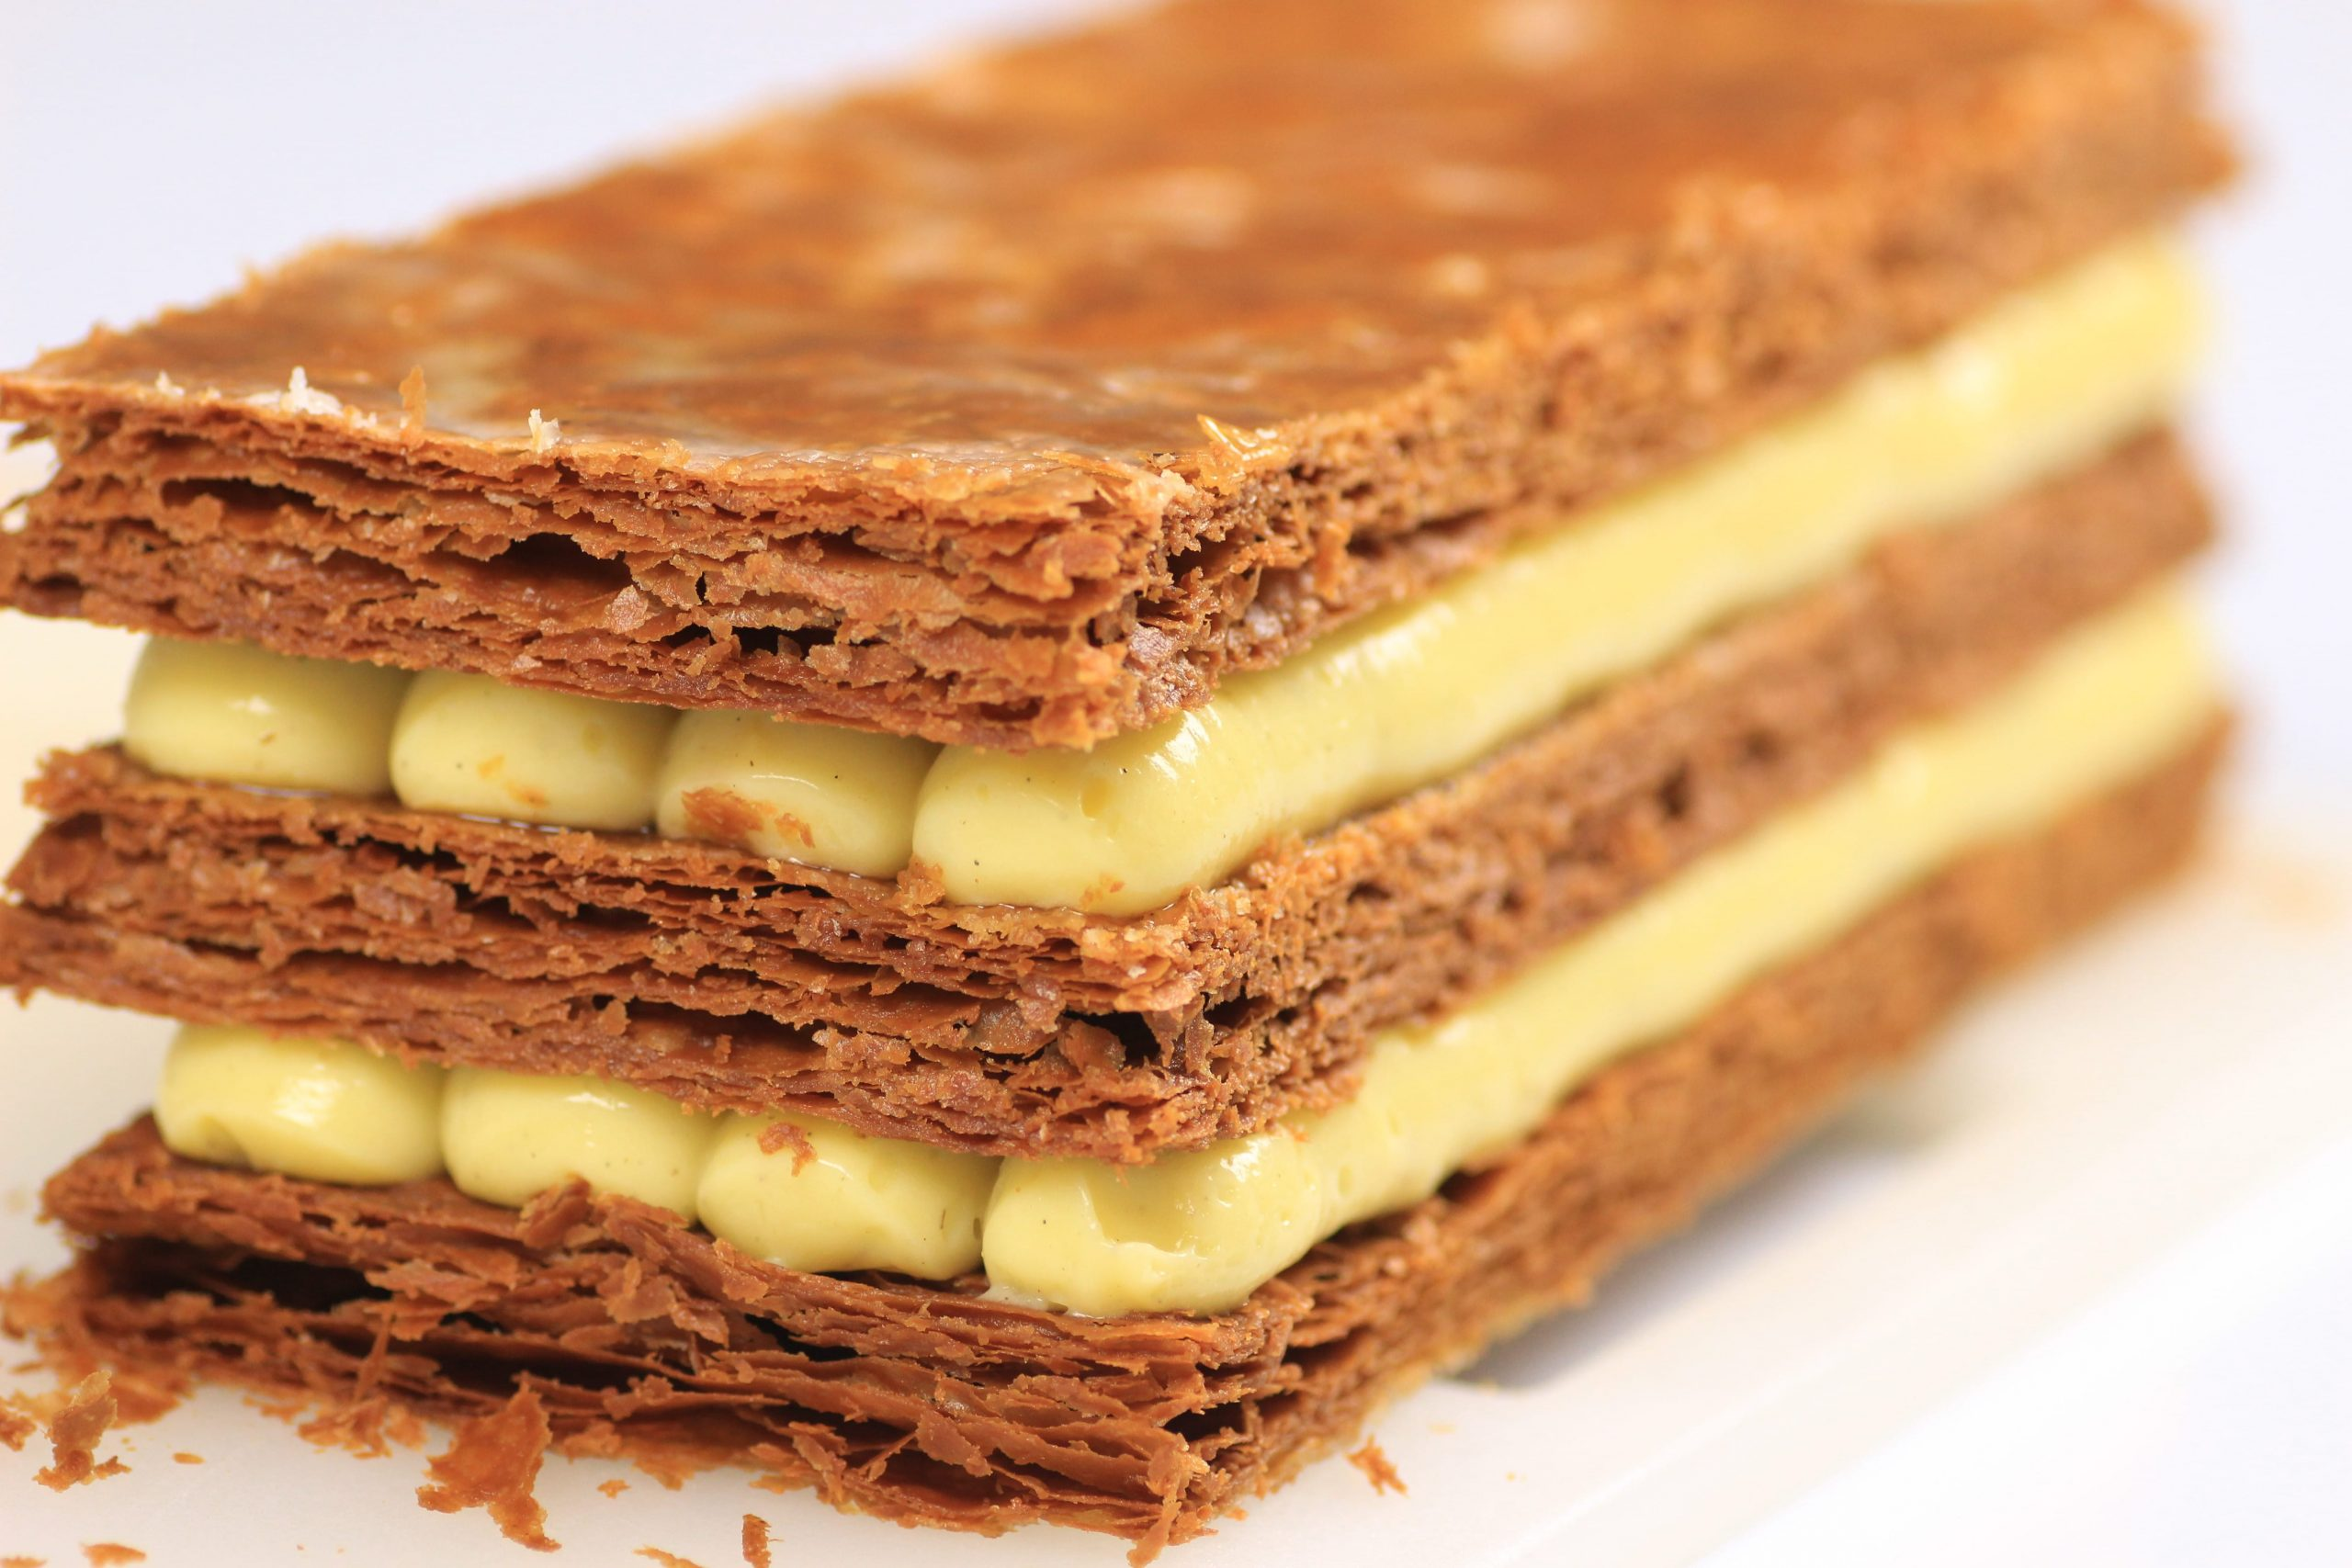 Millefeuille gourmand